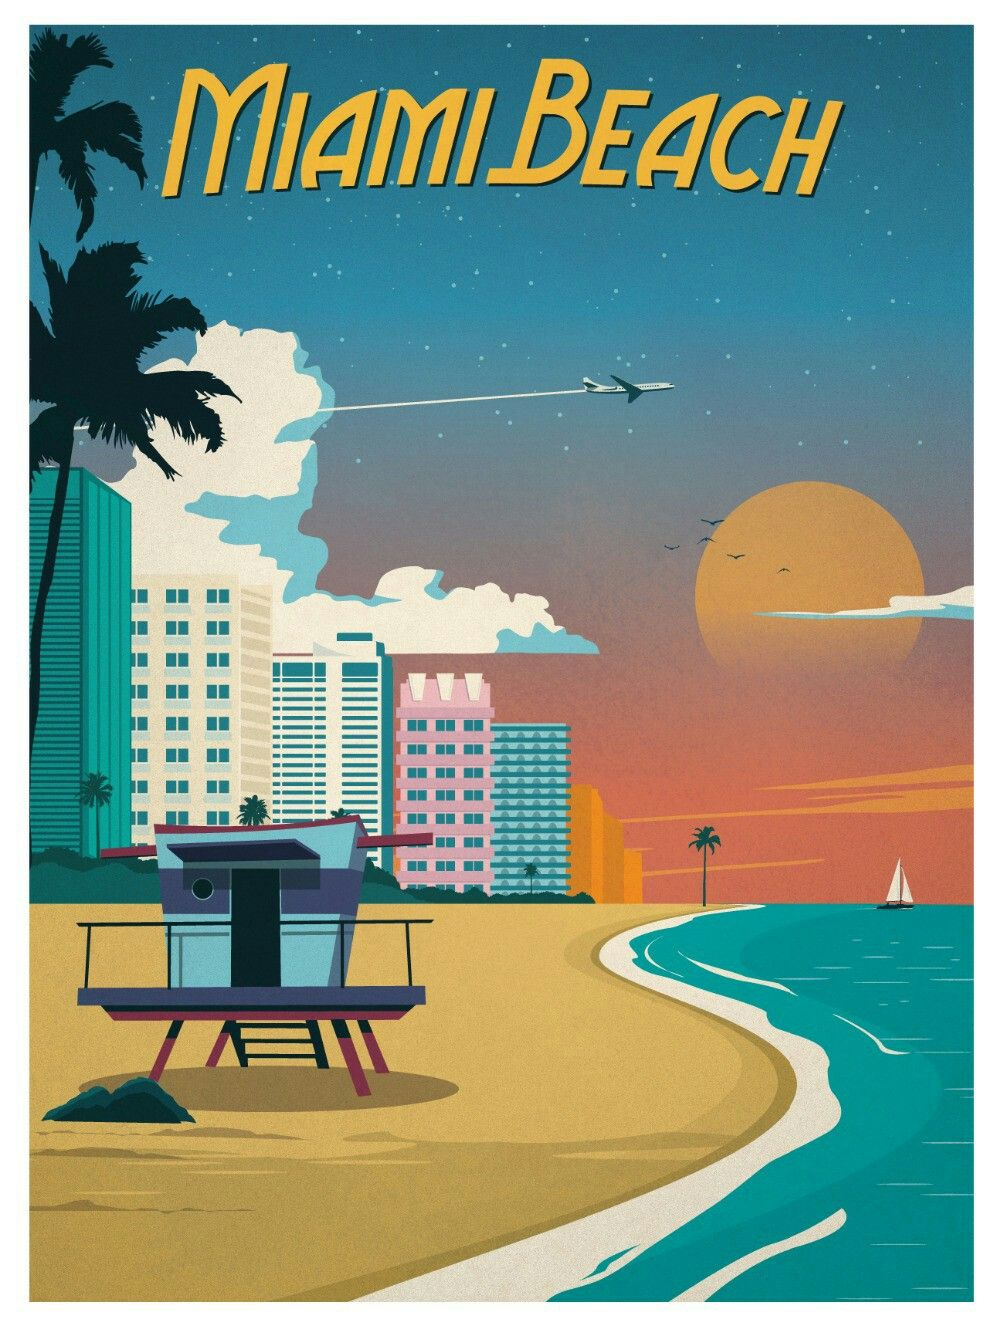 Pin By Em A On Miami London Travel Poster Vintage Beach Posters Vintage Travel Posters